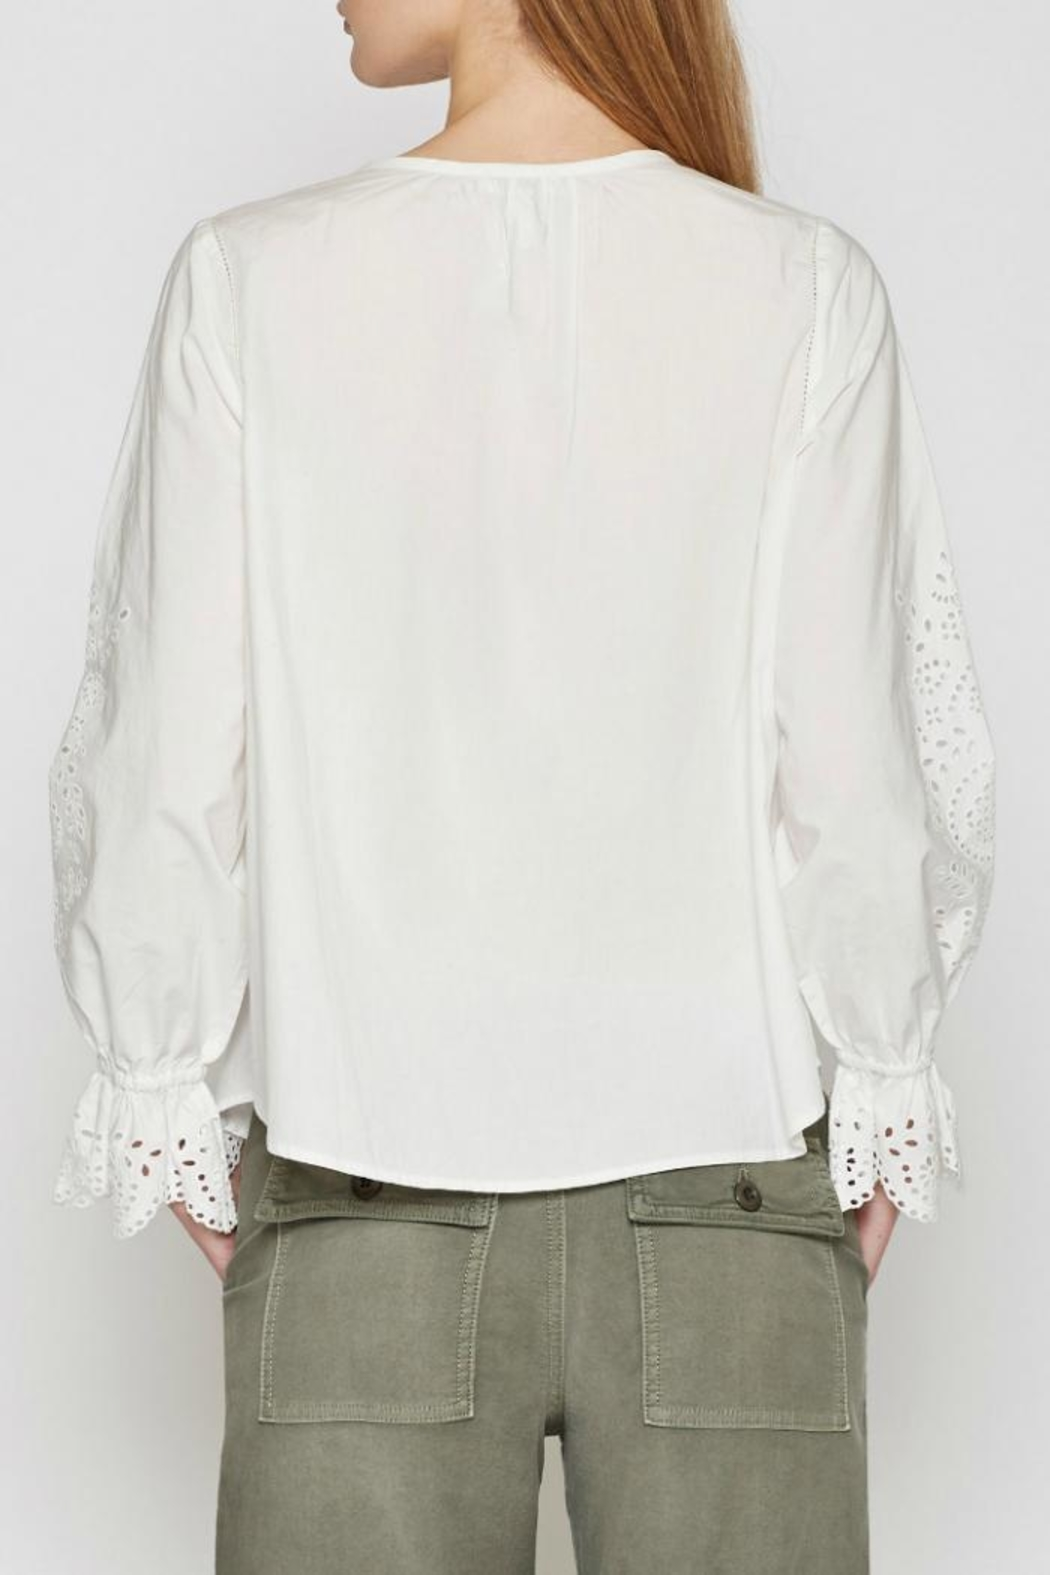 Joie Kalyssa Lace Top - Side Cropped Image